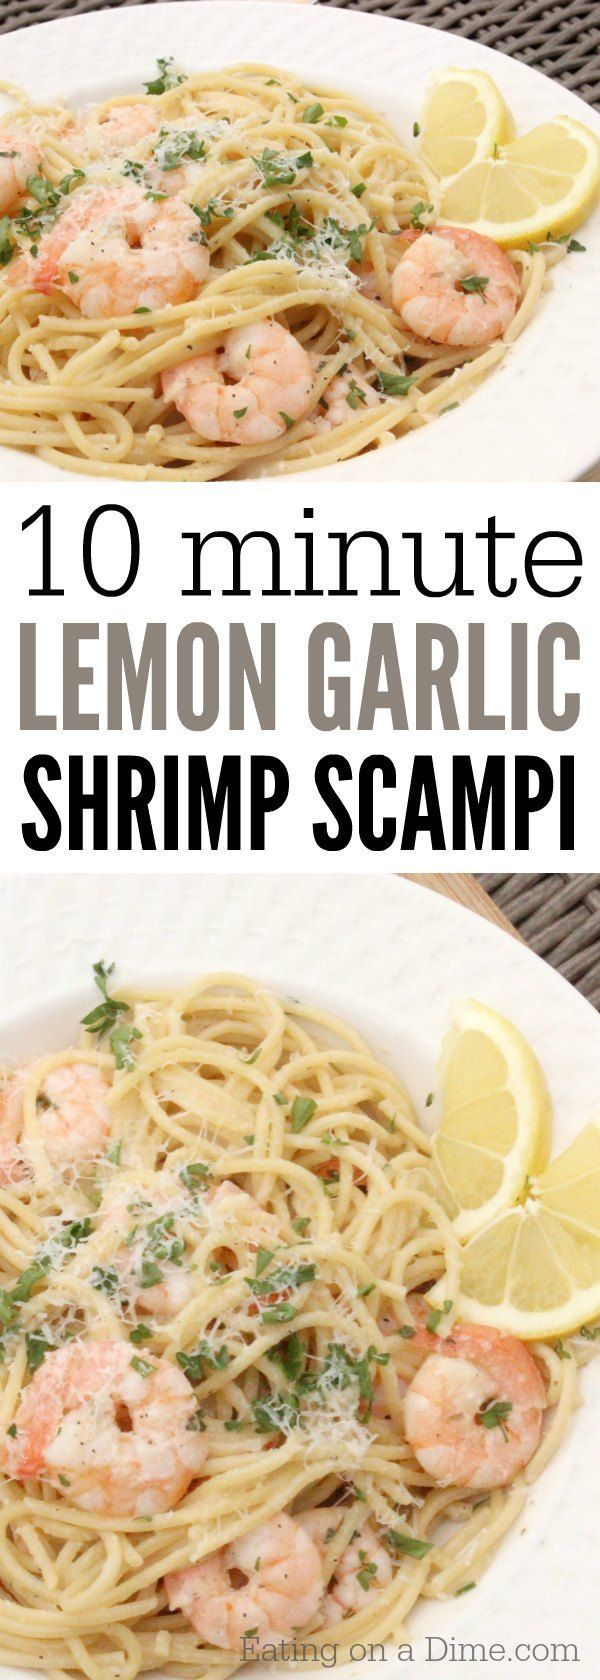 You are going to love this Lemon Garlic Shrimp Scampi Recipe - in just 10 minute...  - Diets You are going to love this Lemon Garlic Shrimp Scampi Recipe - in just 10 minute...  - Diets -